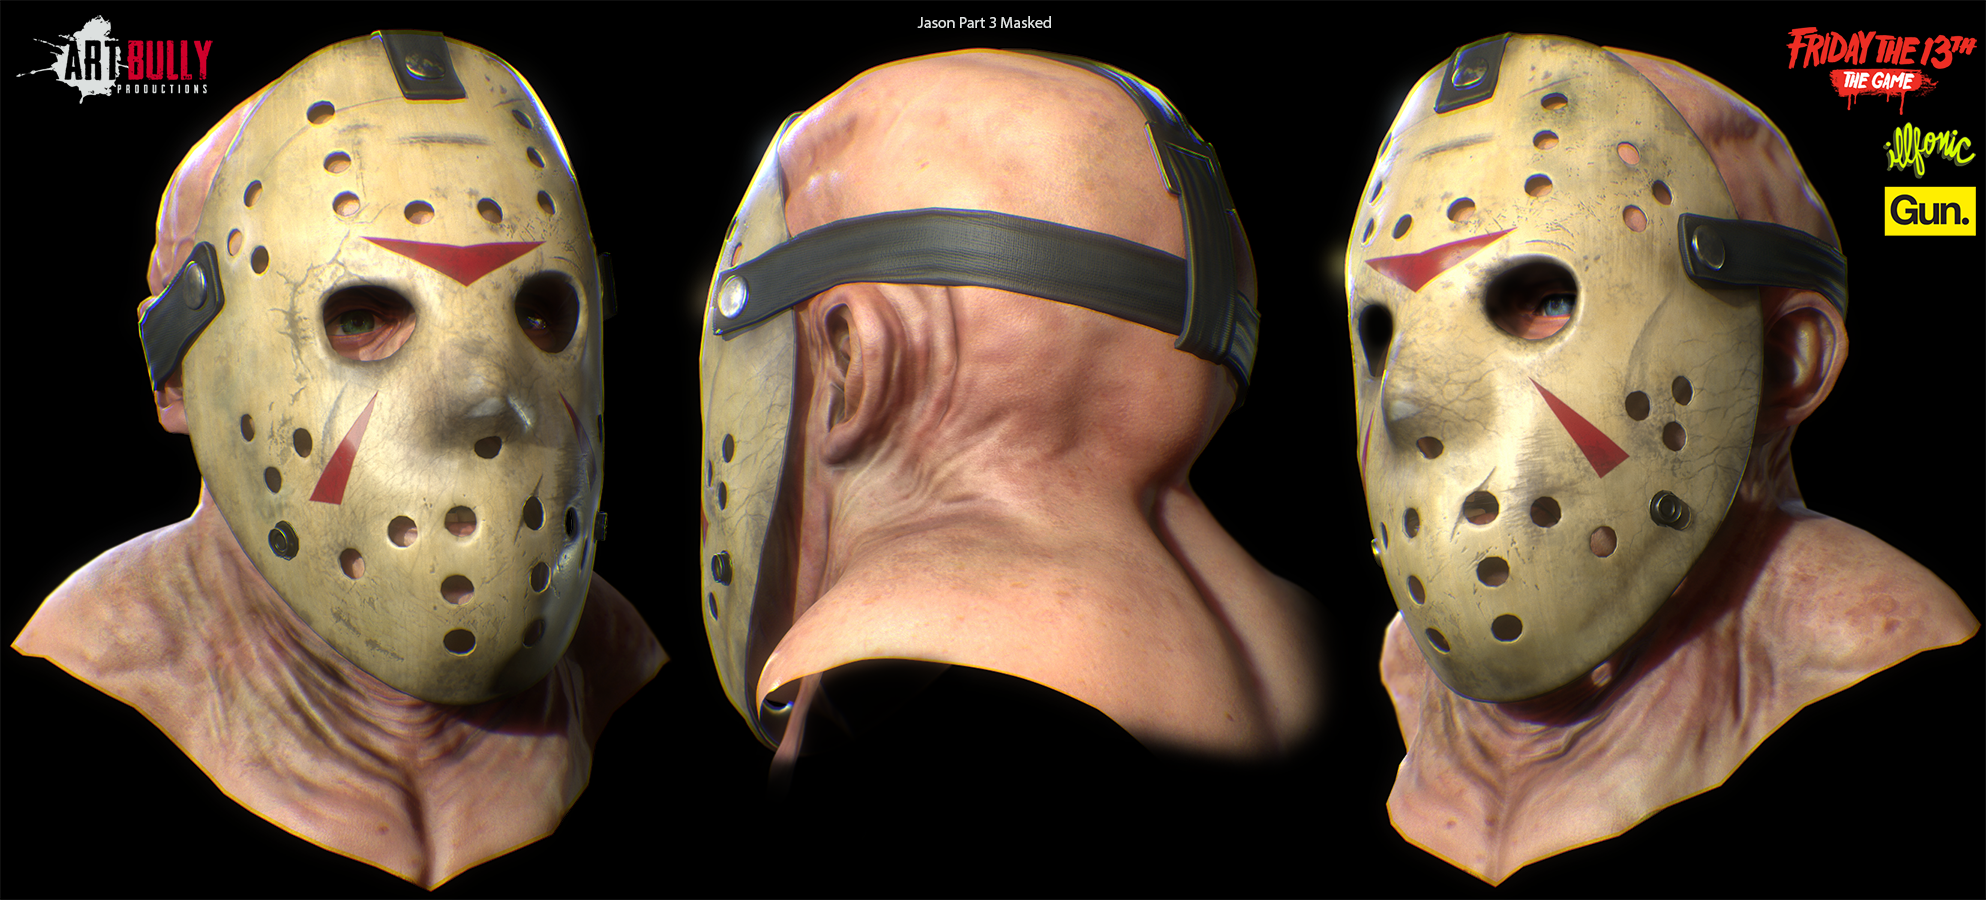 Jason_Part3_Masked_CU_01.png